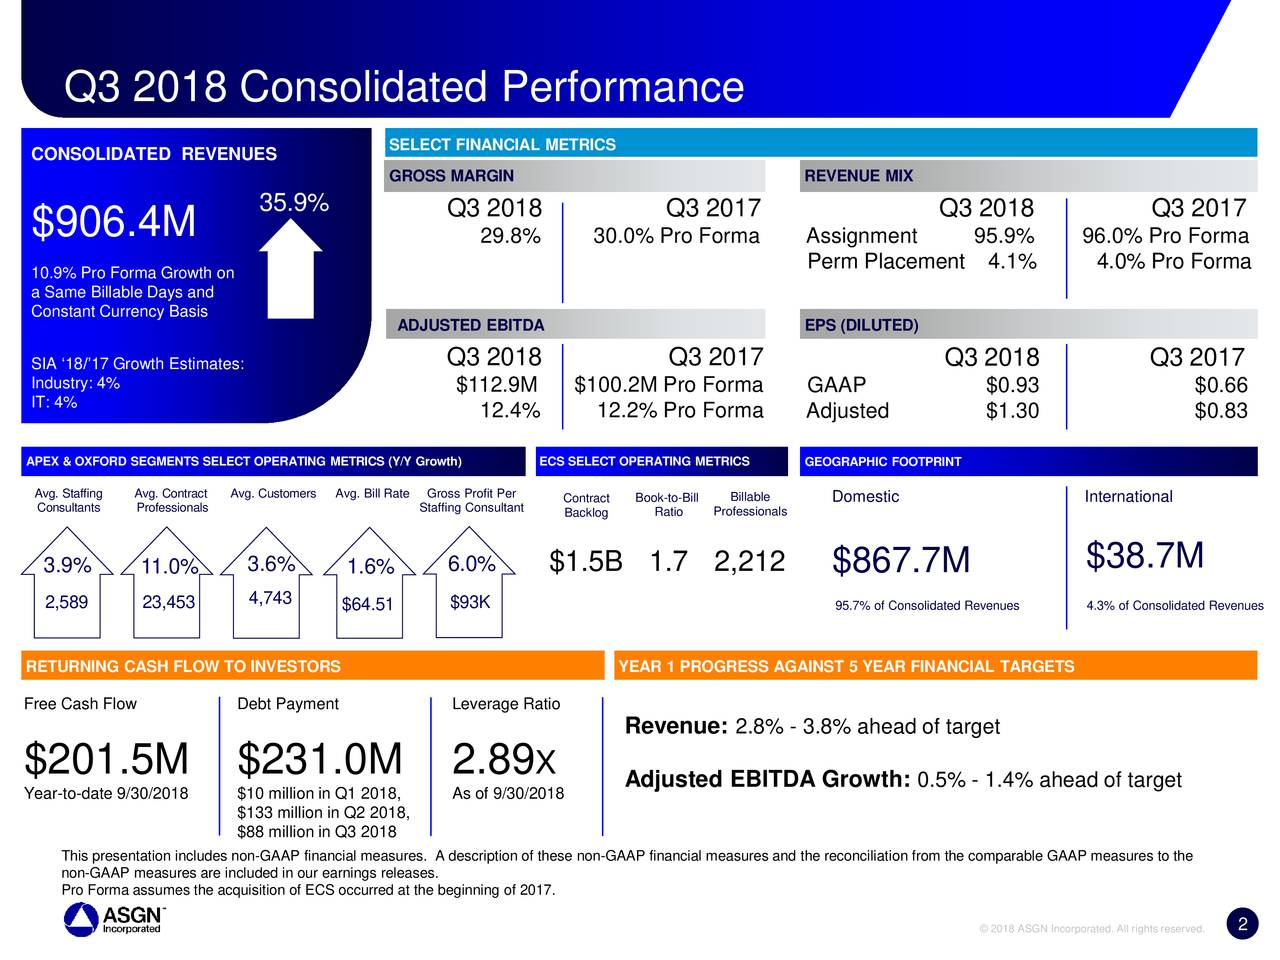 CONSOLIDATED REVENUES SELECT FINANCIAL METRICS GROSS MARGIN REVENUE MIX 35.9% Q3 2018 Q3 2017 Q3 2018 Q3 2017 $906.4M 29.8% 30.0% Pro Forma Assignment 95.9% 96.0% Pro Forma 10.9% Pro Forma Growth on Perm Placement 4.1% 4.0% Pro Forma a Same Billable Days and Constant Currency Basis ADJUSTED EBITDA EPS (DILUTED) SIA '18/'17 Growth Estimates: Q3 2018 Q3 2017 Q3 2018 Q3 2017 Industry: 4% $112.9M $100.2M Pro Forma GAAP $0.93 $0.66 IT: 4% 12.4% 12.2% Pro Forma Adjusted $1.30 $0.83 APEX & OXFORD SEGMENTS SELECT OPERATING METRICS (Y/YECS SELECT OPERATING METRIGEOGRAPHIC FOOTPRINT Avg. StaffAvg. ContrAvg. CustoAvg. BillGross Profit PContractook-to-Billllable Domestic International ConsultantProfessionals Staffing ConsuBacklog Ratio Professionals 3.9% 11.0% 3.6% 1.6% 6.0% $1.5B 1.7 2,212 $867.7M $38.7M 4,743 2,589 23,453 $64.51 $93K 95.7% of Consolidated Rev4.3% of Consolidated Revenues RETURNING CASH FLOW TO INVESTORS YEAR 1 PROGRESS AGAINST 5 YEAR FINANCIAL TARGETS Free Cash Flow Debt Payment Leverage Ratio Revenue: 2.8% - 3.8% ahead of target $201.5M $231.0M 2.89 X Adjusted EBITDA Growth: 0.5% - 1.4% ahead of target Year-to-date 9/30/201$10 million in Q1 2018As of 9/30/2018 $133 million in Q2 2018, $88 million in Q3 2018 This presentation includes non-GAAP financial measures. A description of these non-GAAP financial measures and the reconciliation from the comparable GAAP measures to the non-GAAP measures are included in our earnings releases. Pro Forma assumes the acquisition of ECS occurred at the beginning of 2017. 2 2 © 2018 ASGN Incorporated. All rights reserved.